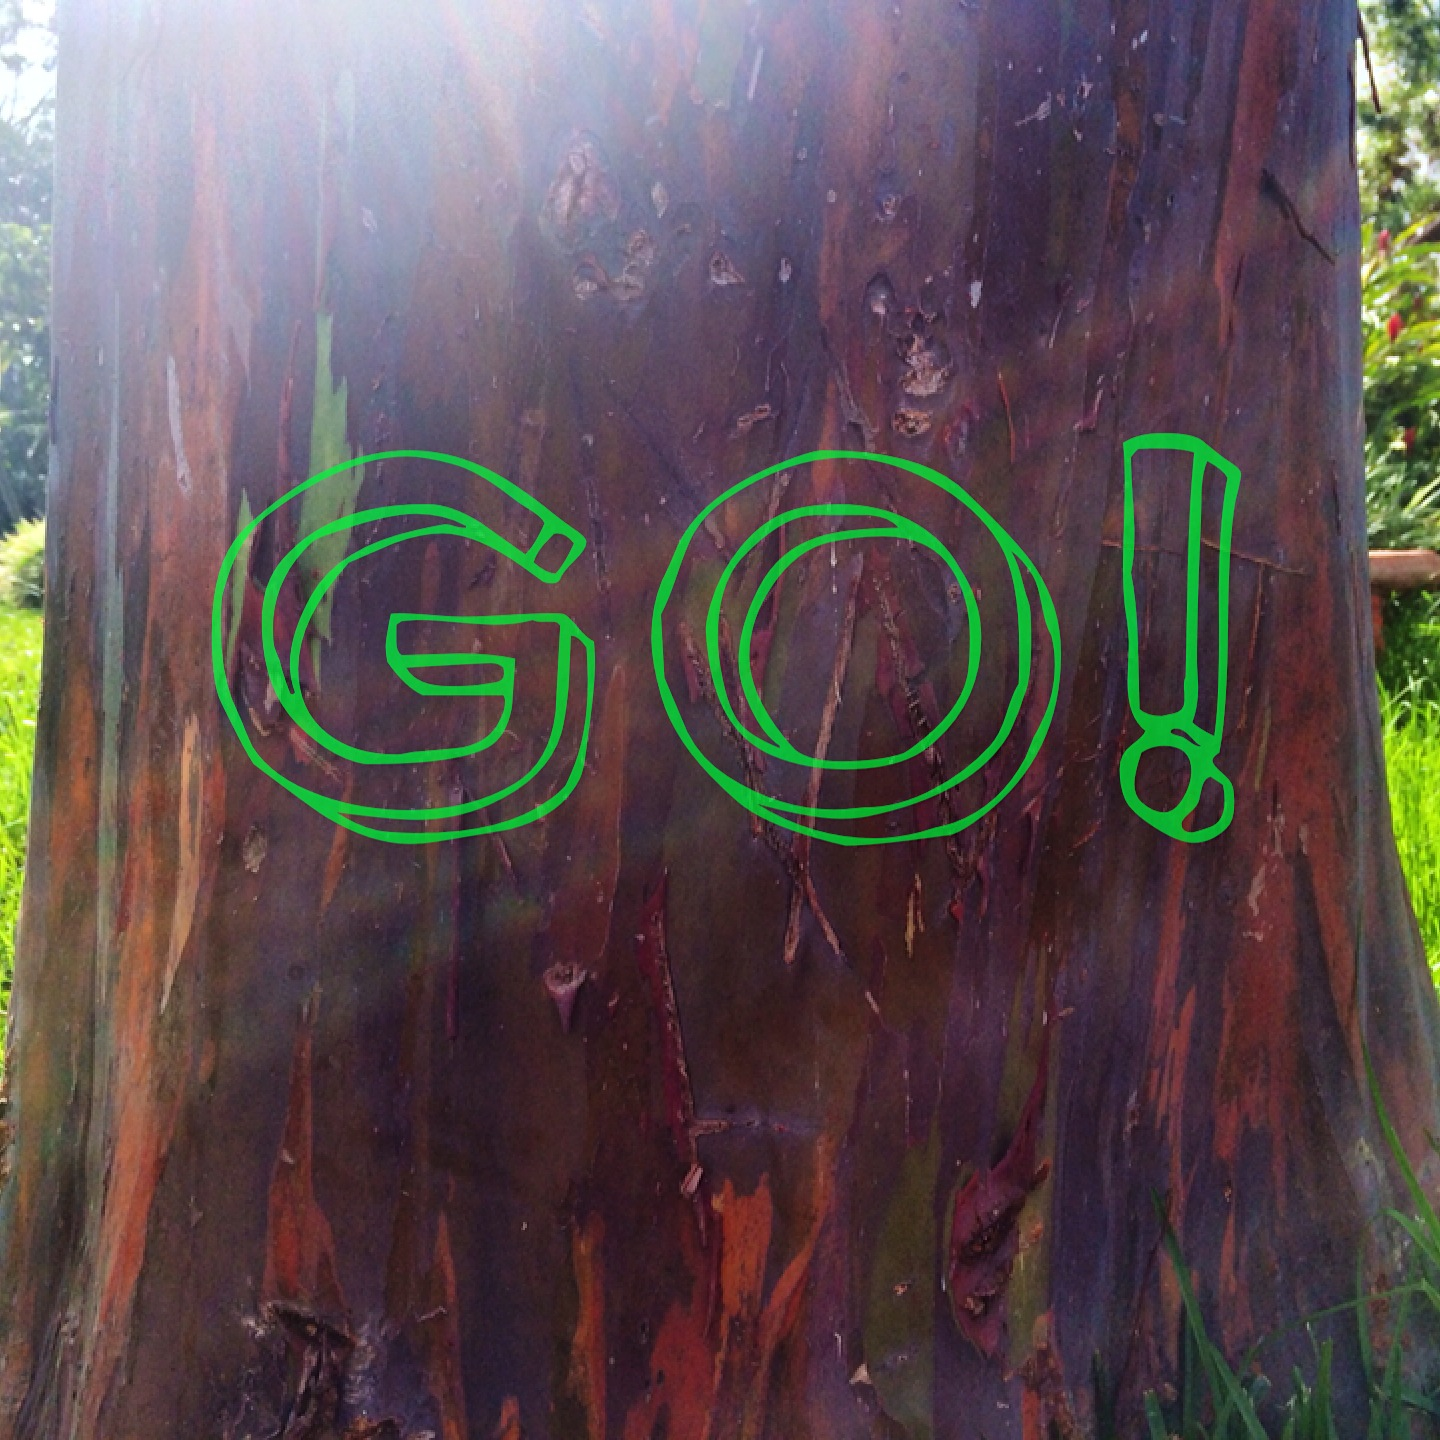 words of action framed by the colorful trunk of a rainbow eucalyptus tree found on a mountainside coffee plantation in costa rica, 2014.